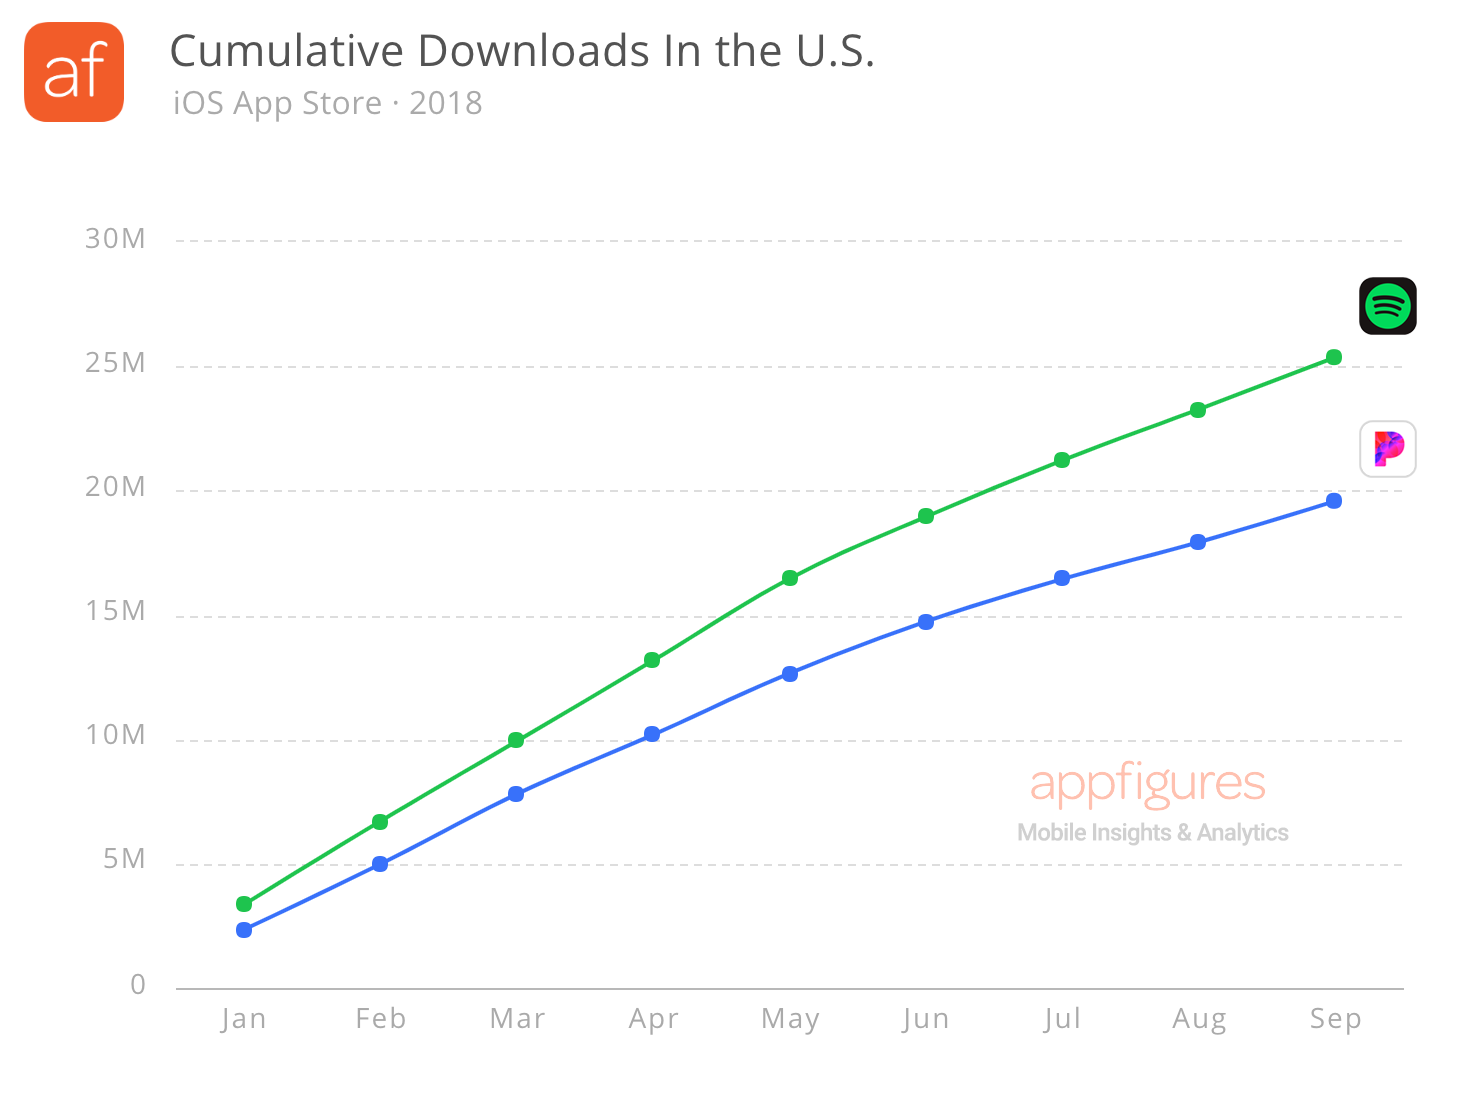 Estimated app downloads for Spotify and Pandora in the U.S. (2018)